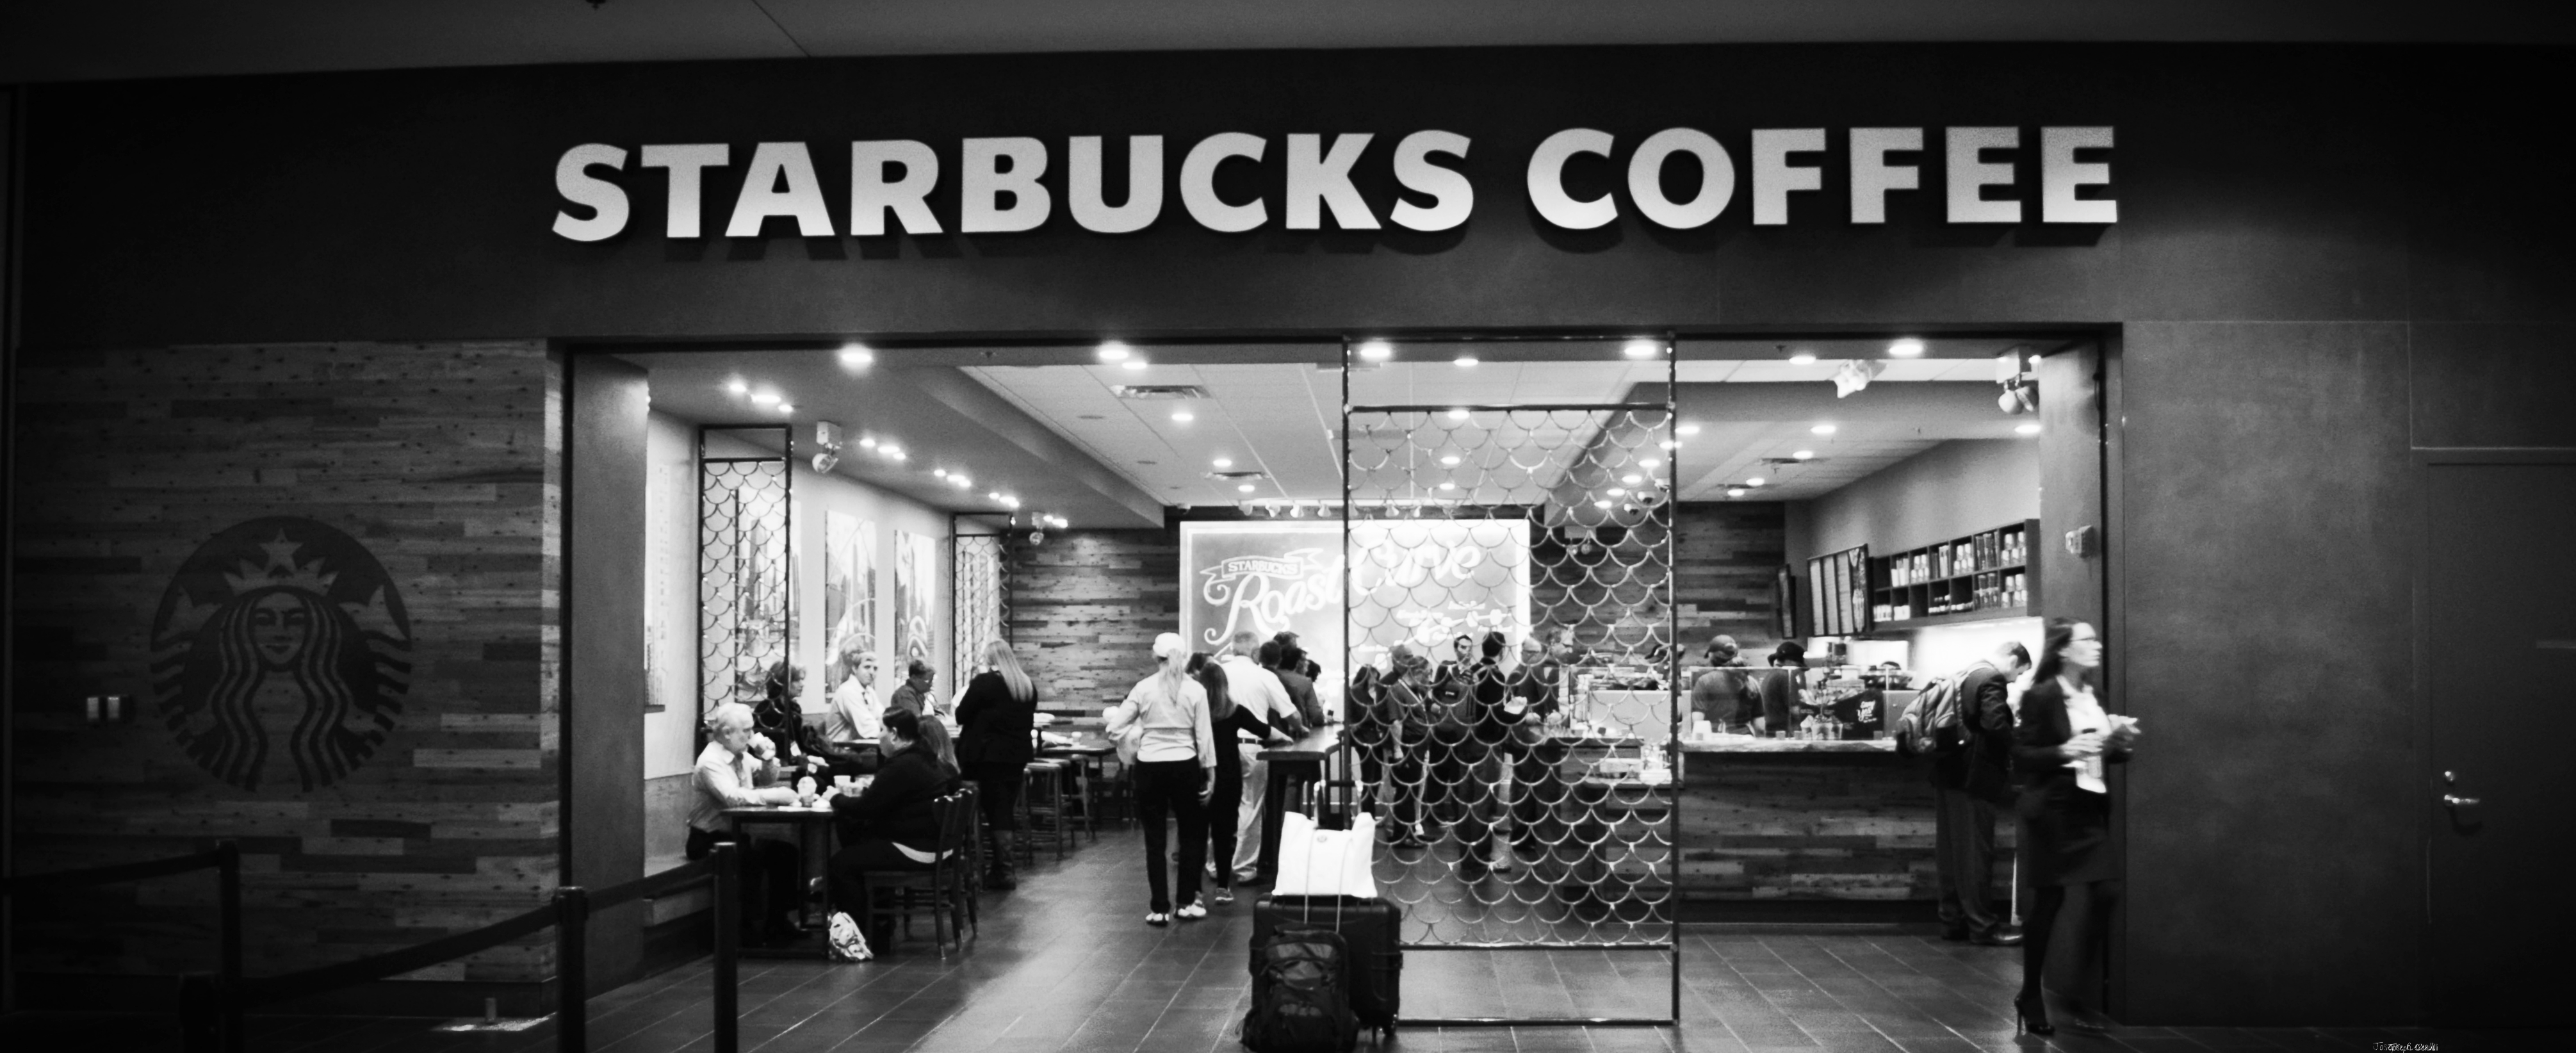 Starbucks will close 8,000 of its stores to implement racial bias training for its employees to improve customer experience.